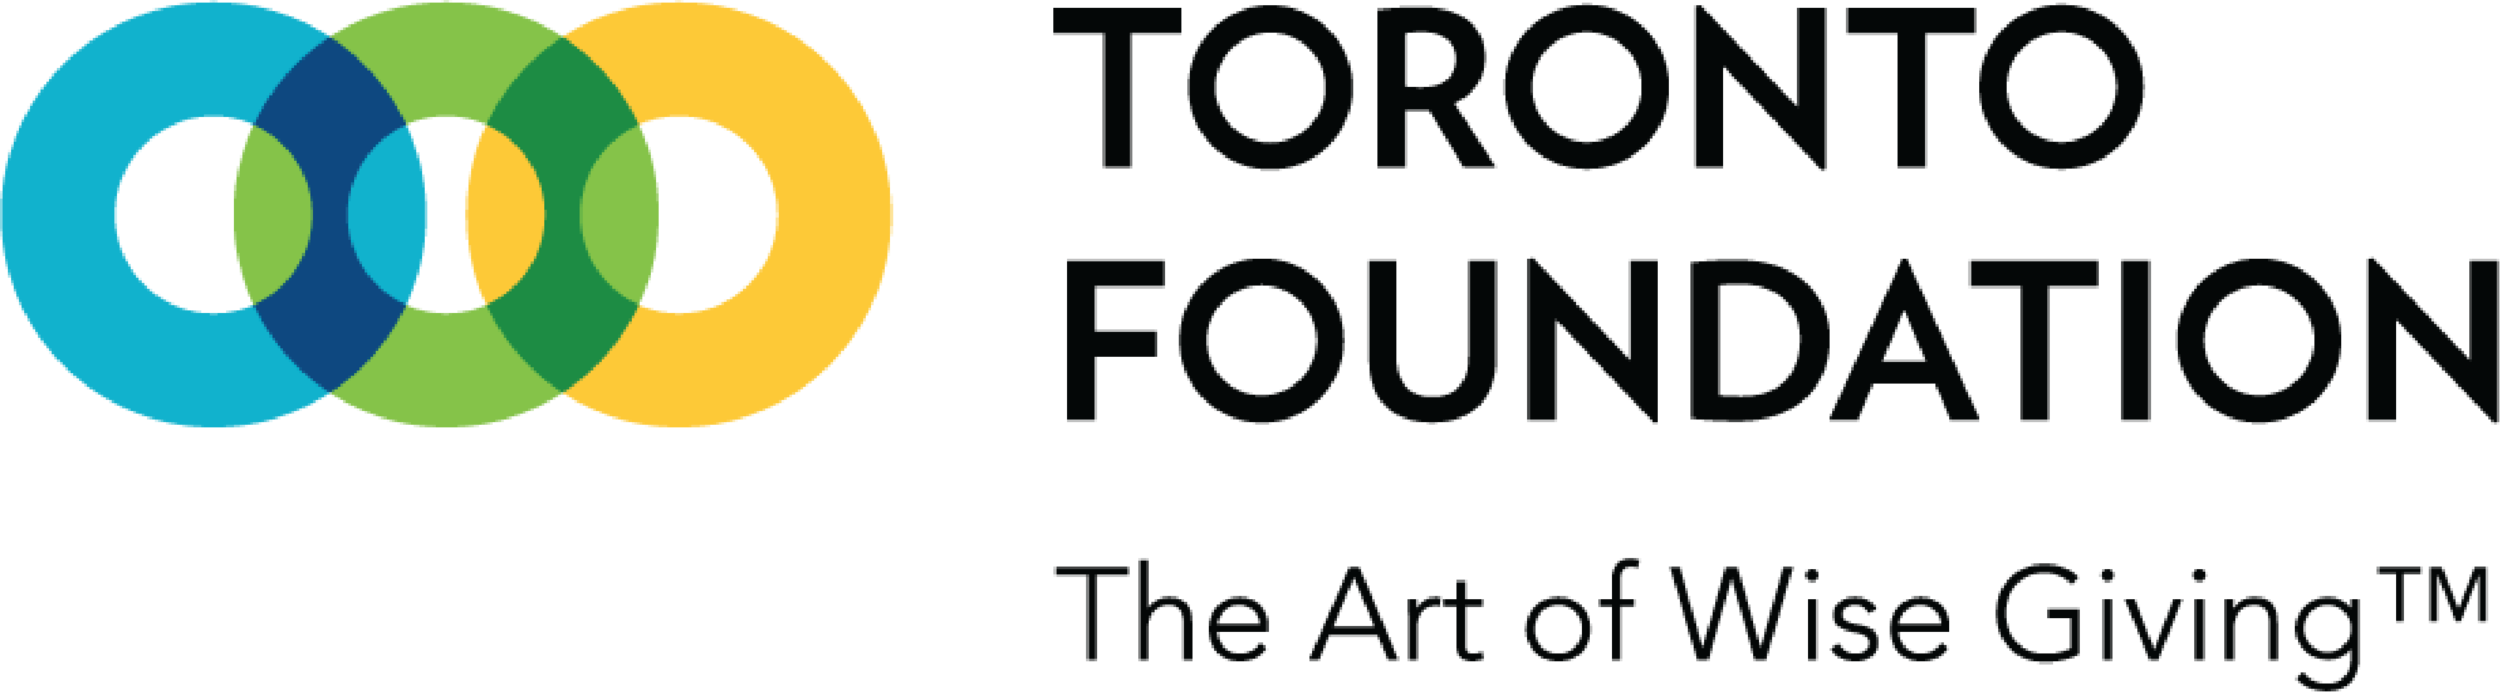 toronto foundation.png